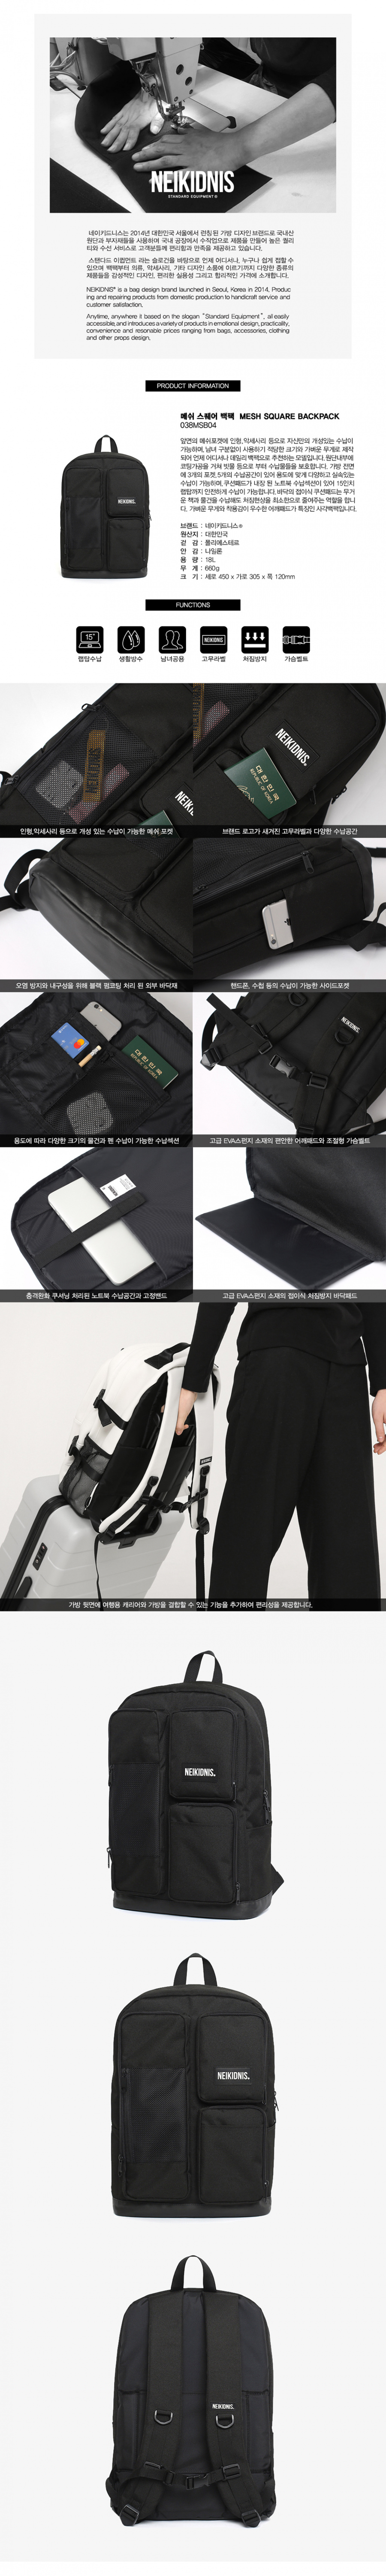 네이키드니스(NEIKIDNIS) MESH SQUARE BACKPACK / BLACK